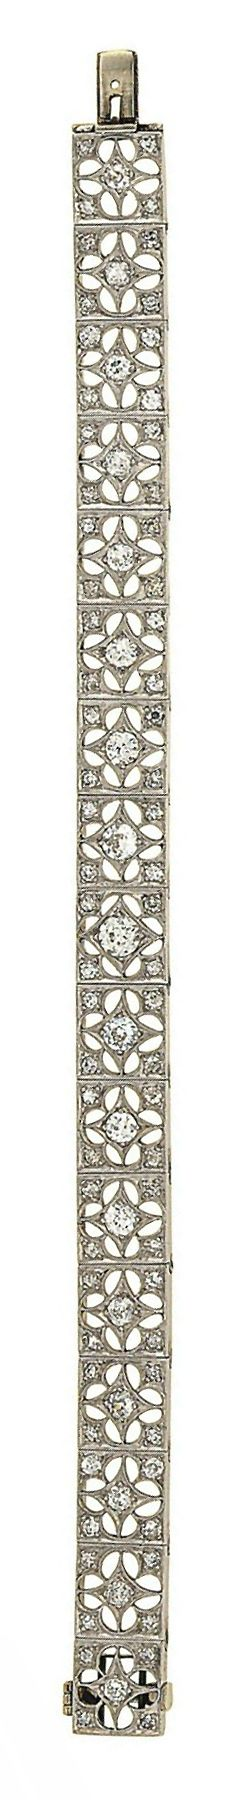 A diamond bracelet Composed of a series of square panels pierced with quatrefoil motifs, set with old-cut diamonds, 18.0cm long